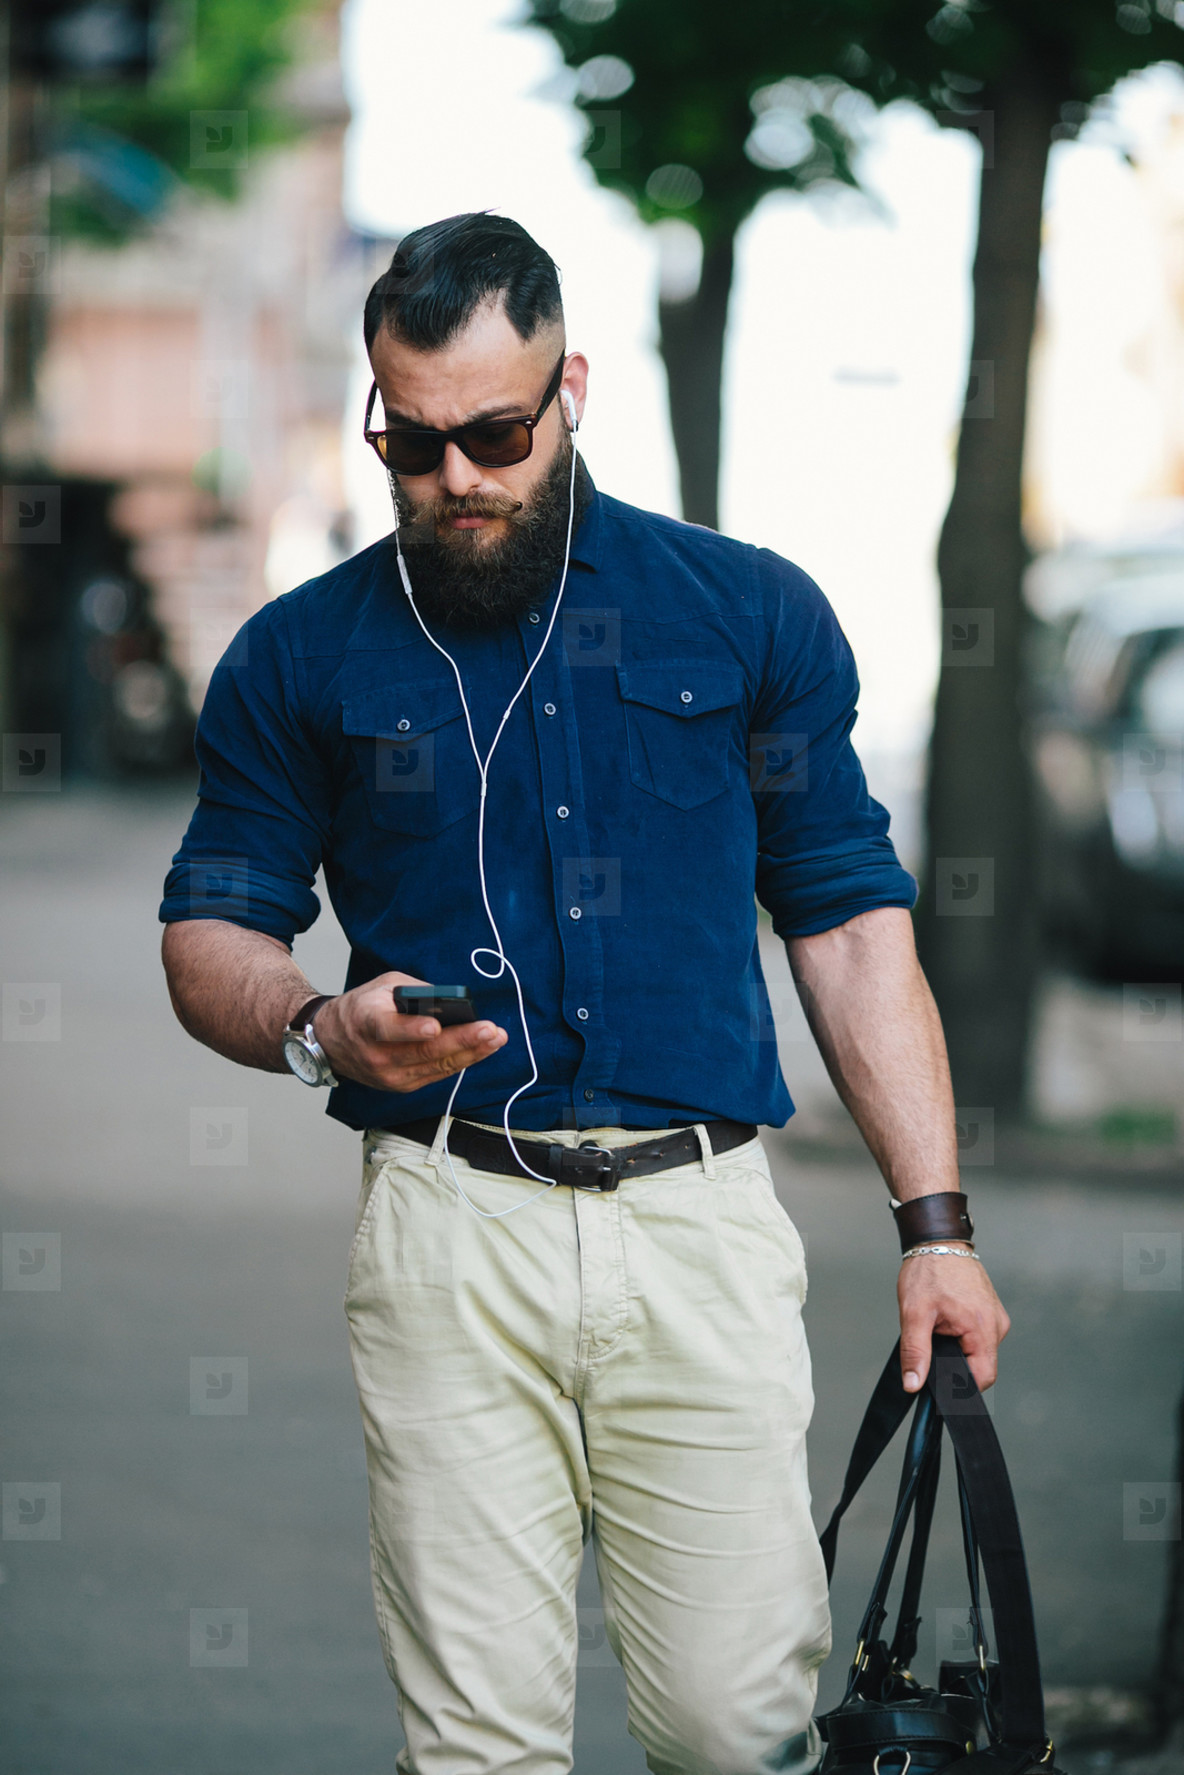 bearded man goes and listens to music